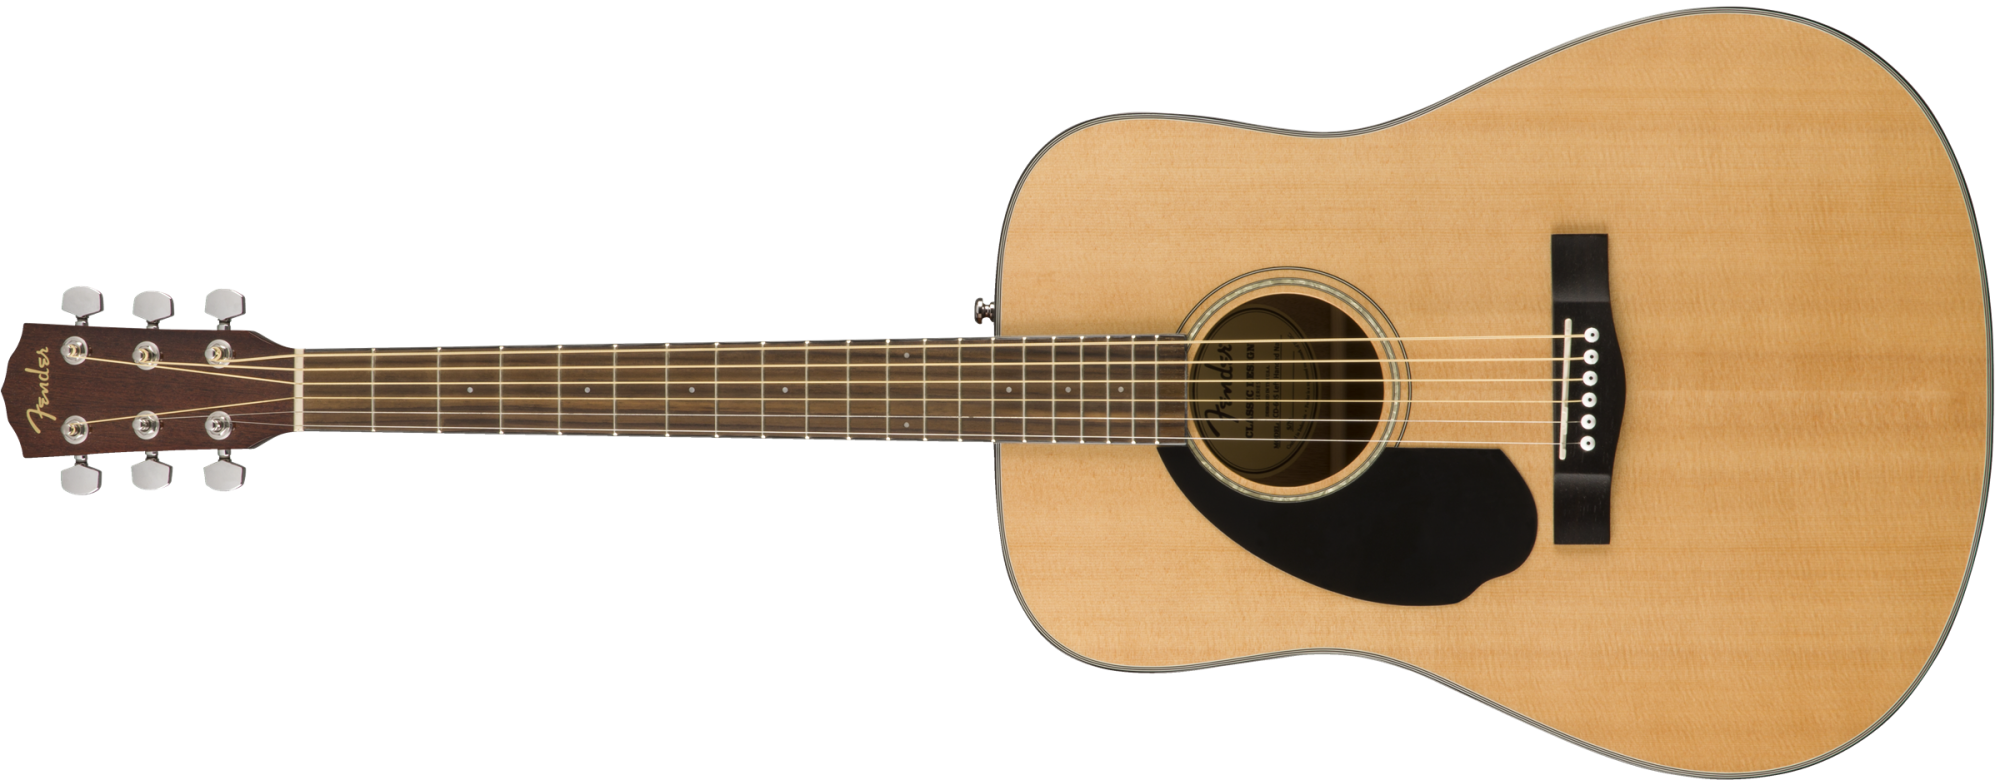 Fender CD-60S Left-Hand Acoustic Guitar - Natural